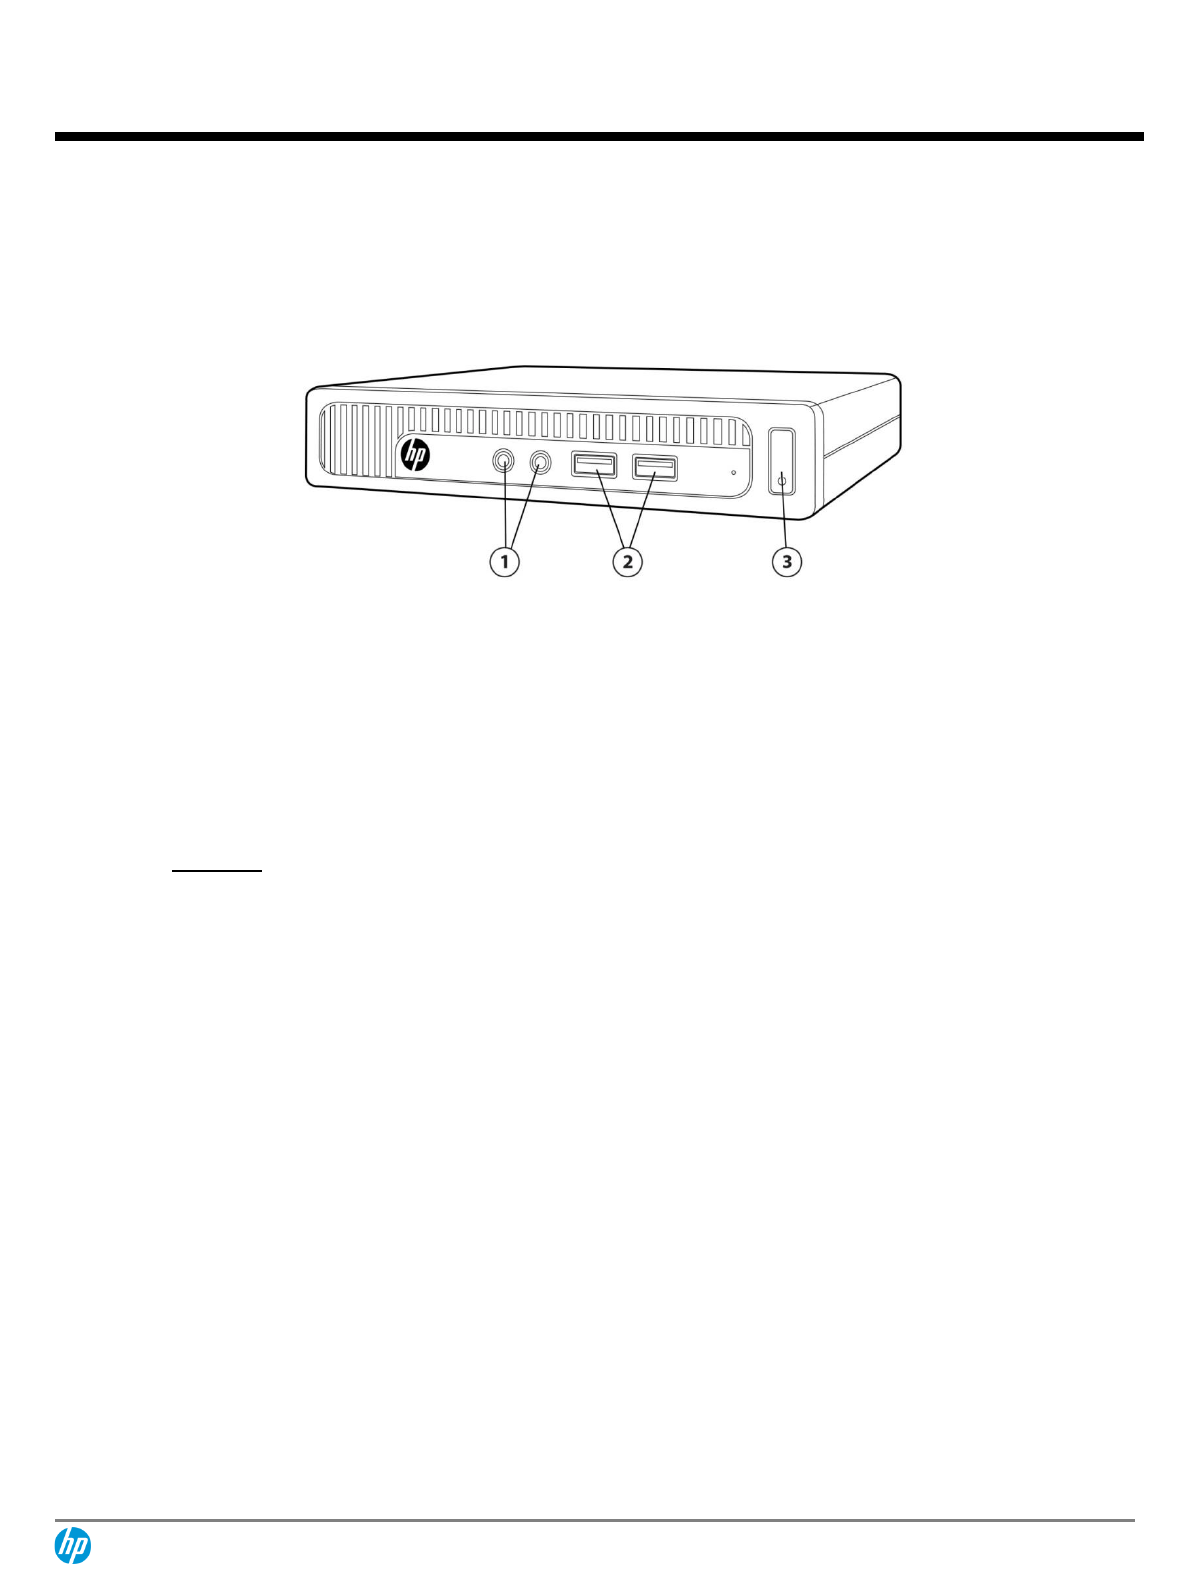 User manual HP EliteDesk 705 G1 (90 pages)